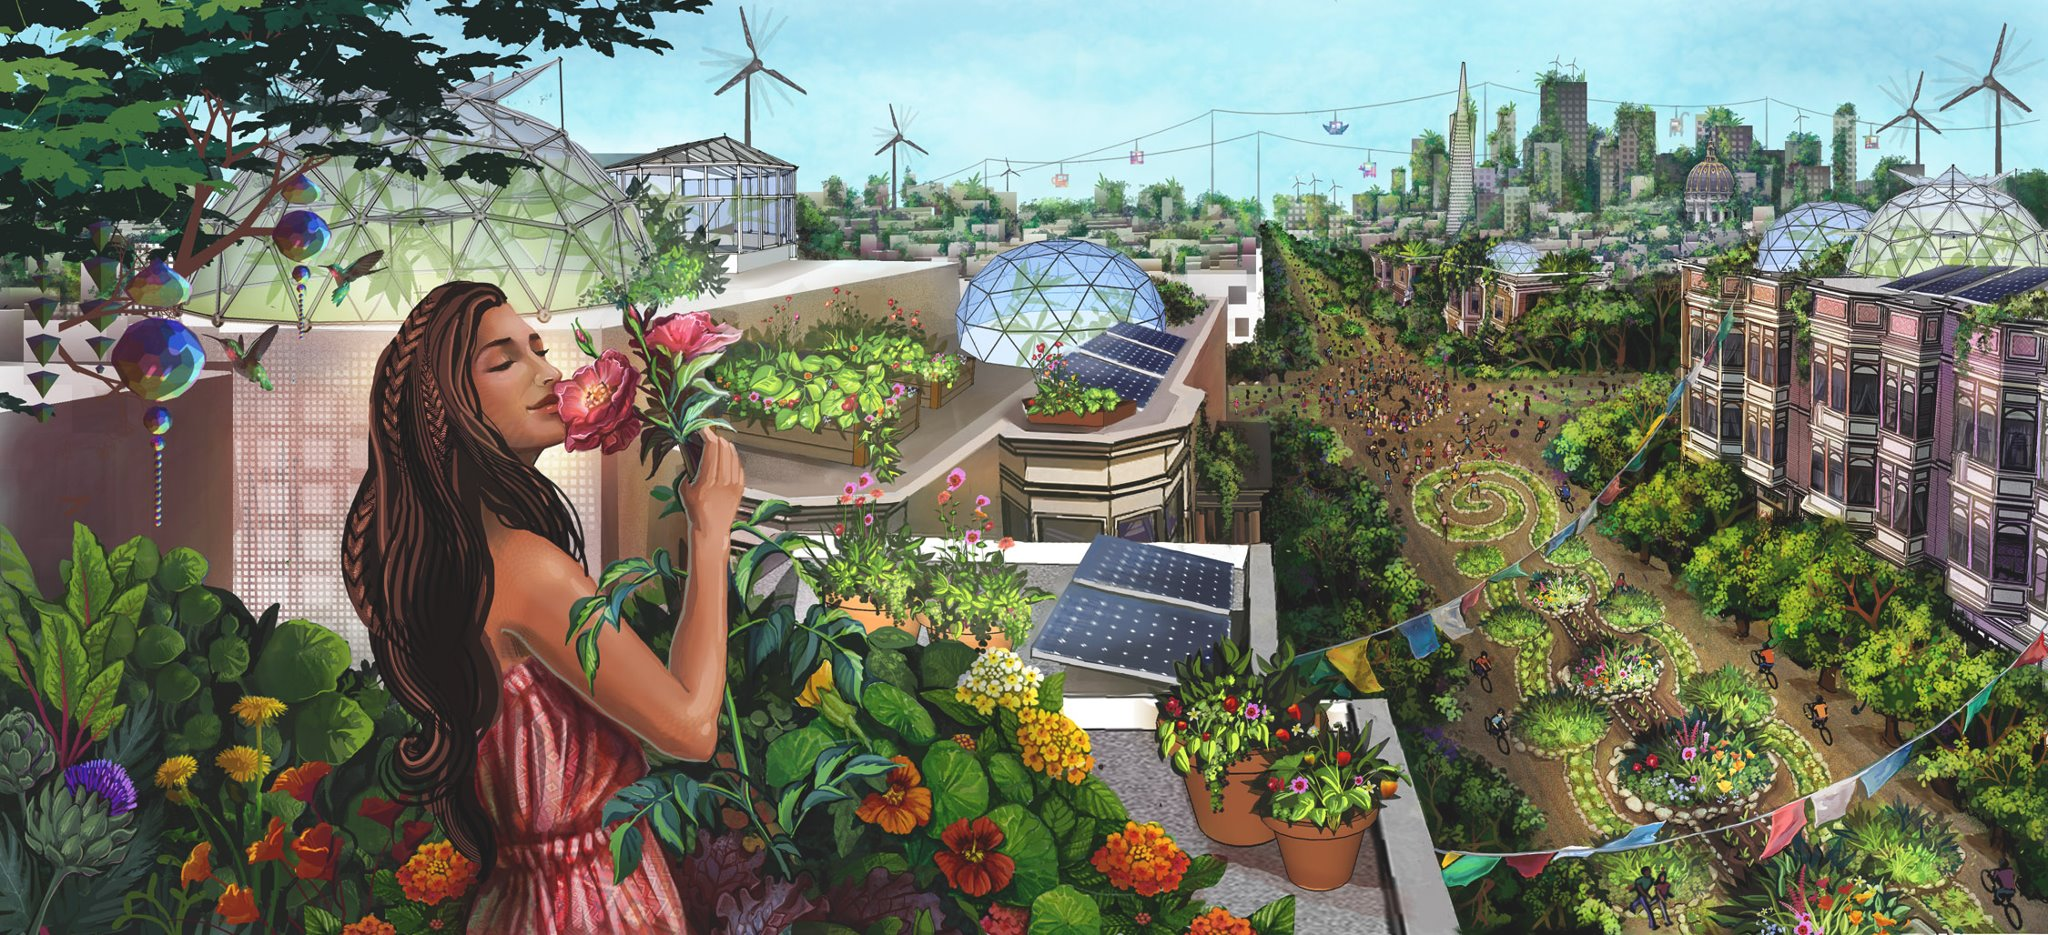 Ecocity 2048 - Illustration by Jessica Perlstein